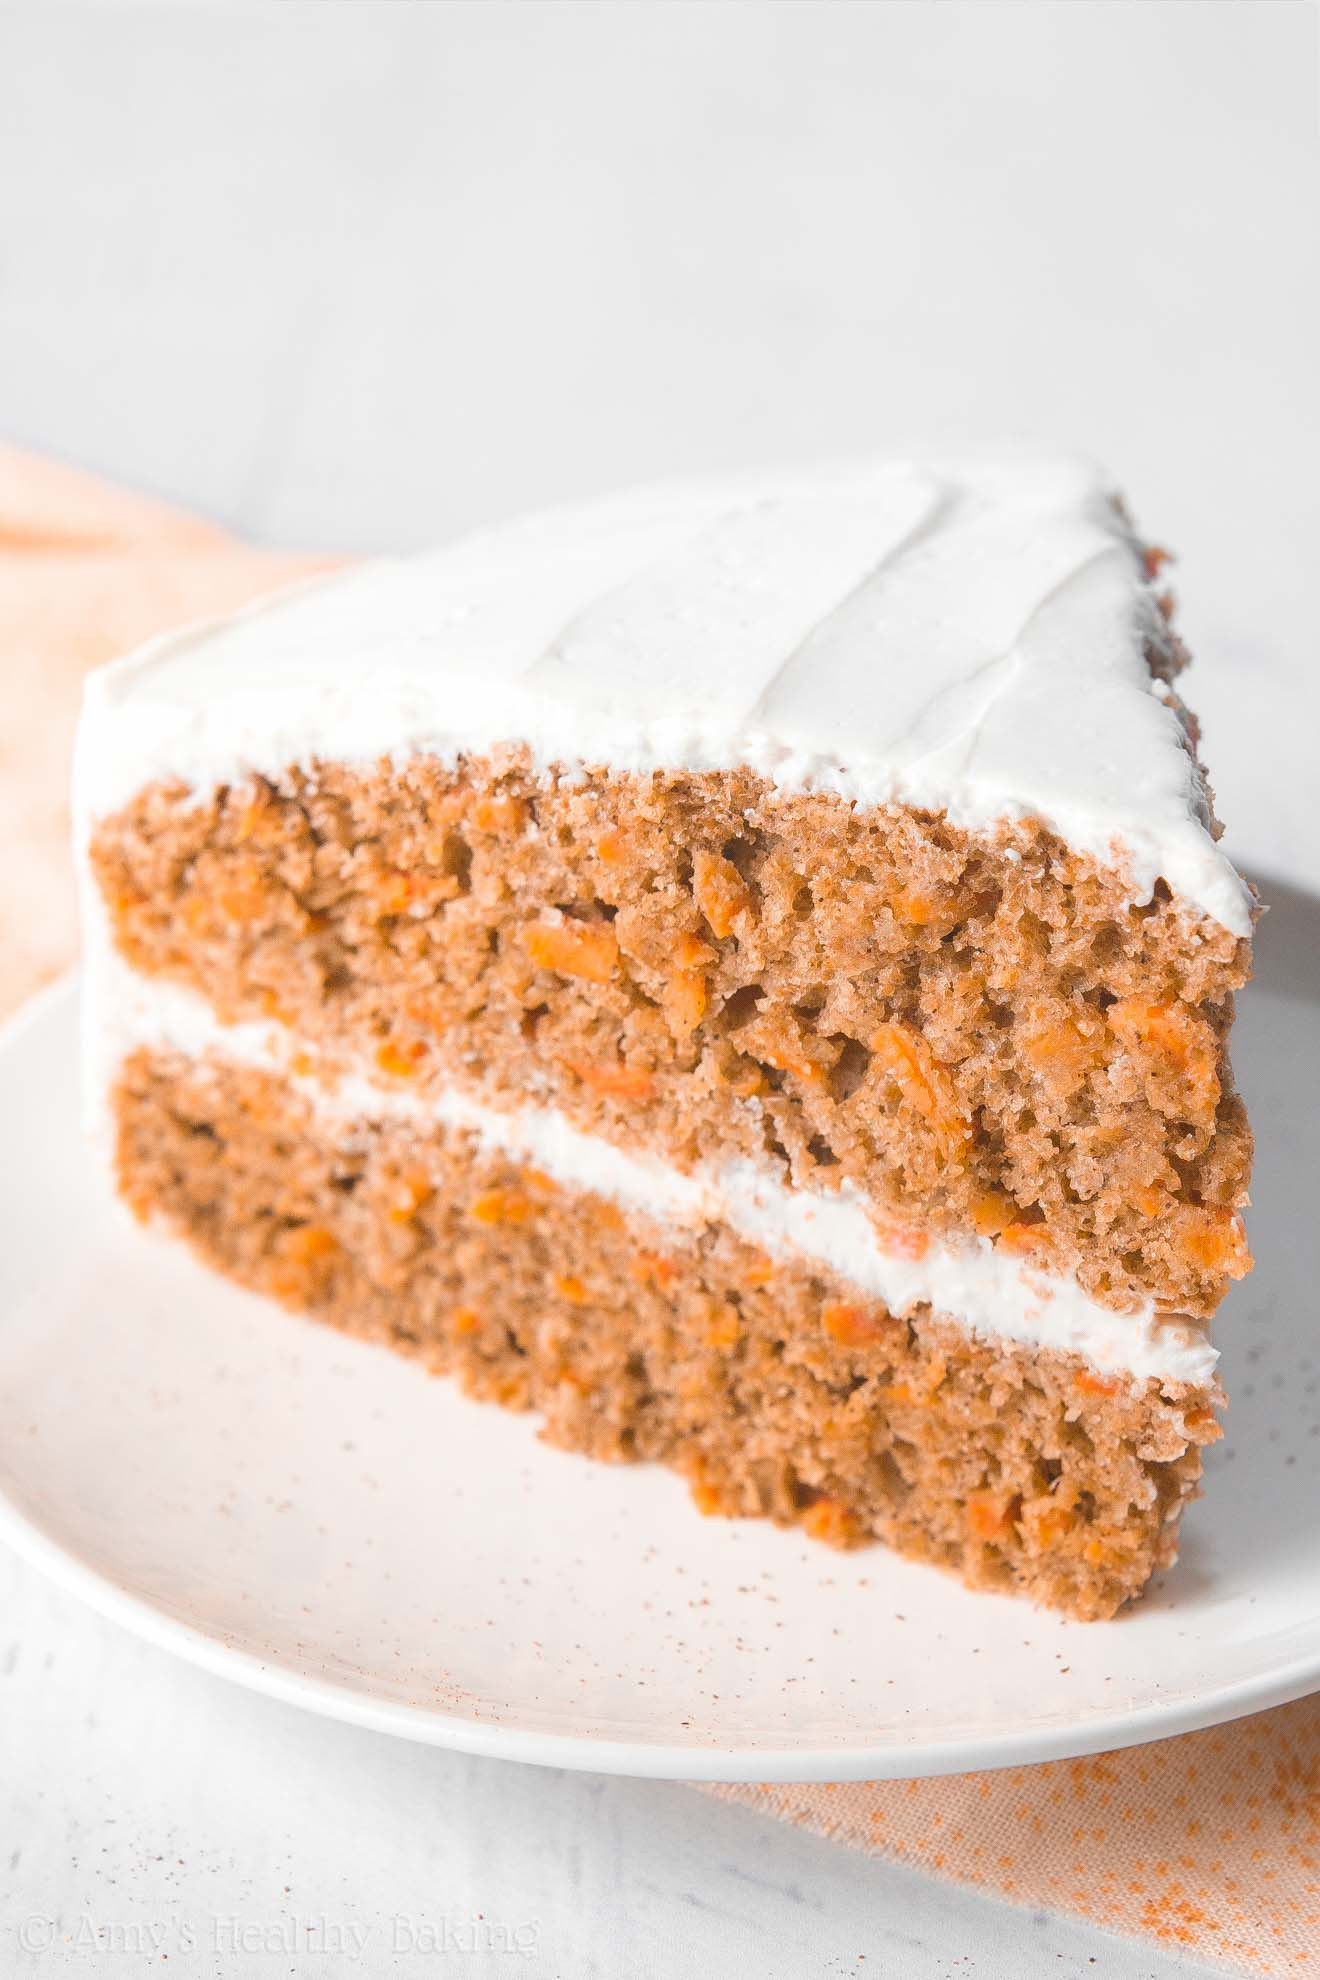 Low Fat Carrot Cake  The Ultimate Healthy Carrot Cake With a Step by Step